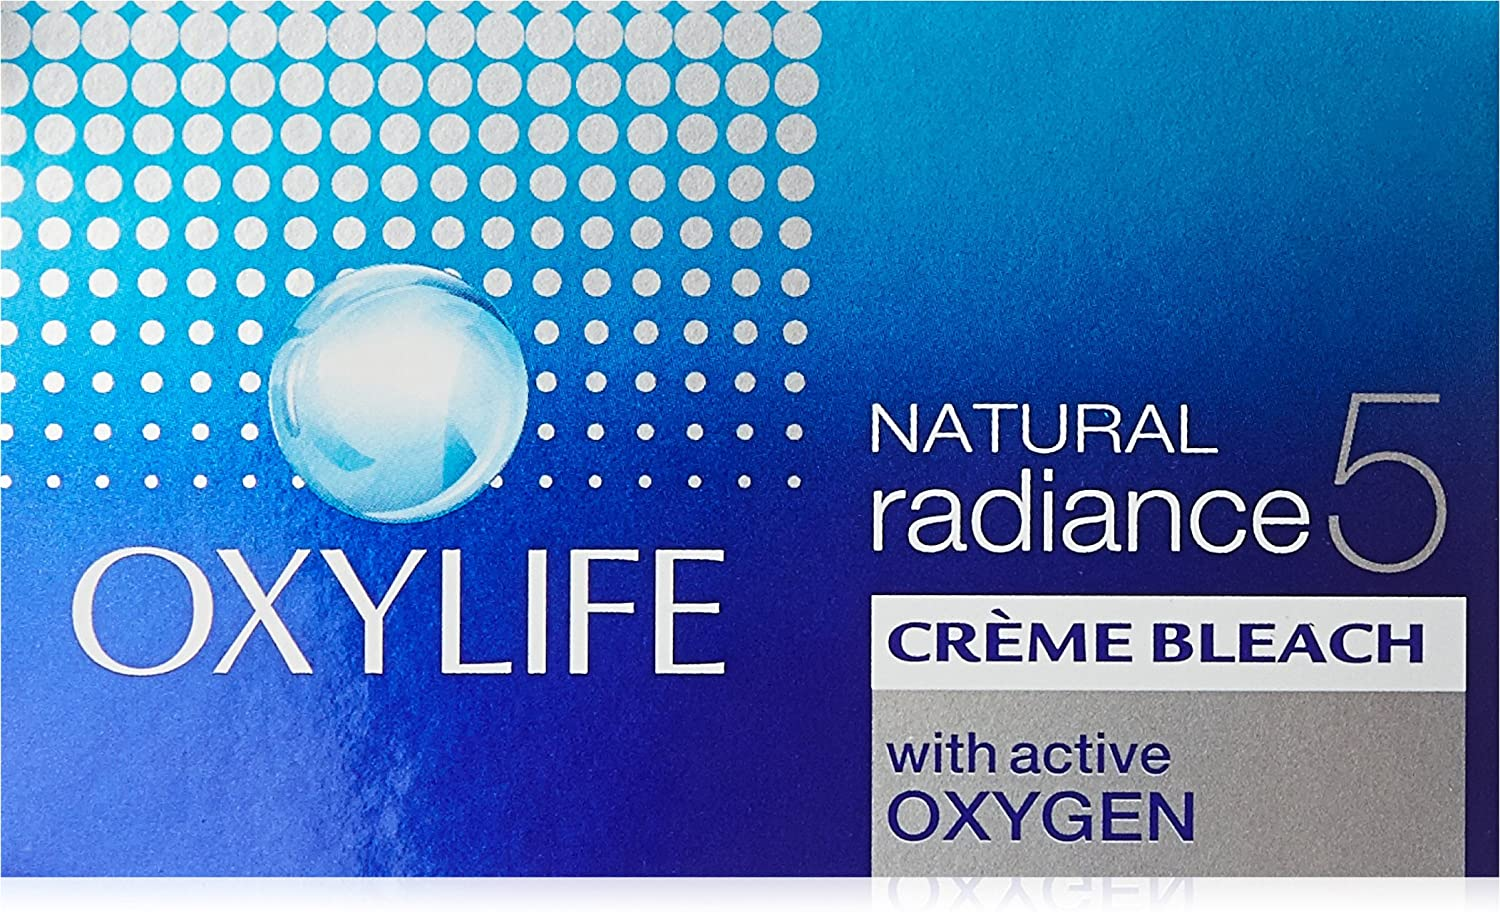 Oxy Life Natural Radiance5 Creme Bleach Oxygen Power with Skin Radiance Serum 27g by OxyLife Dabur India Limited FM038027